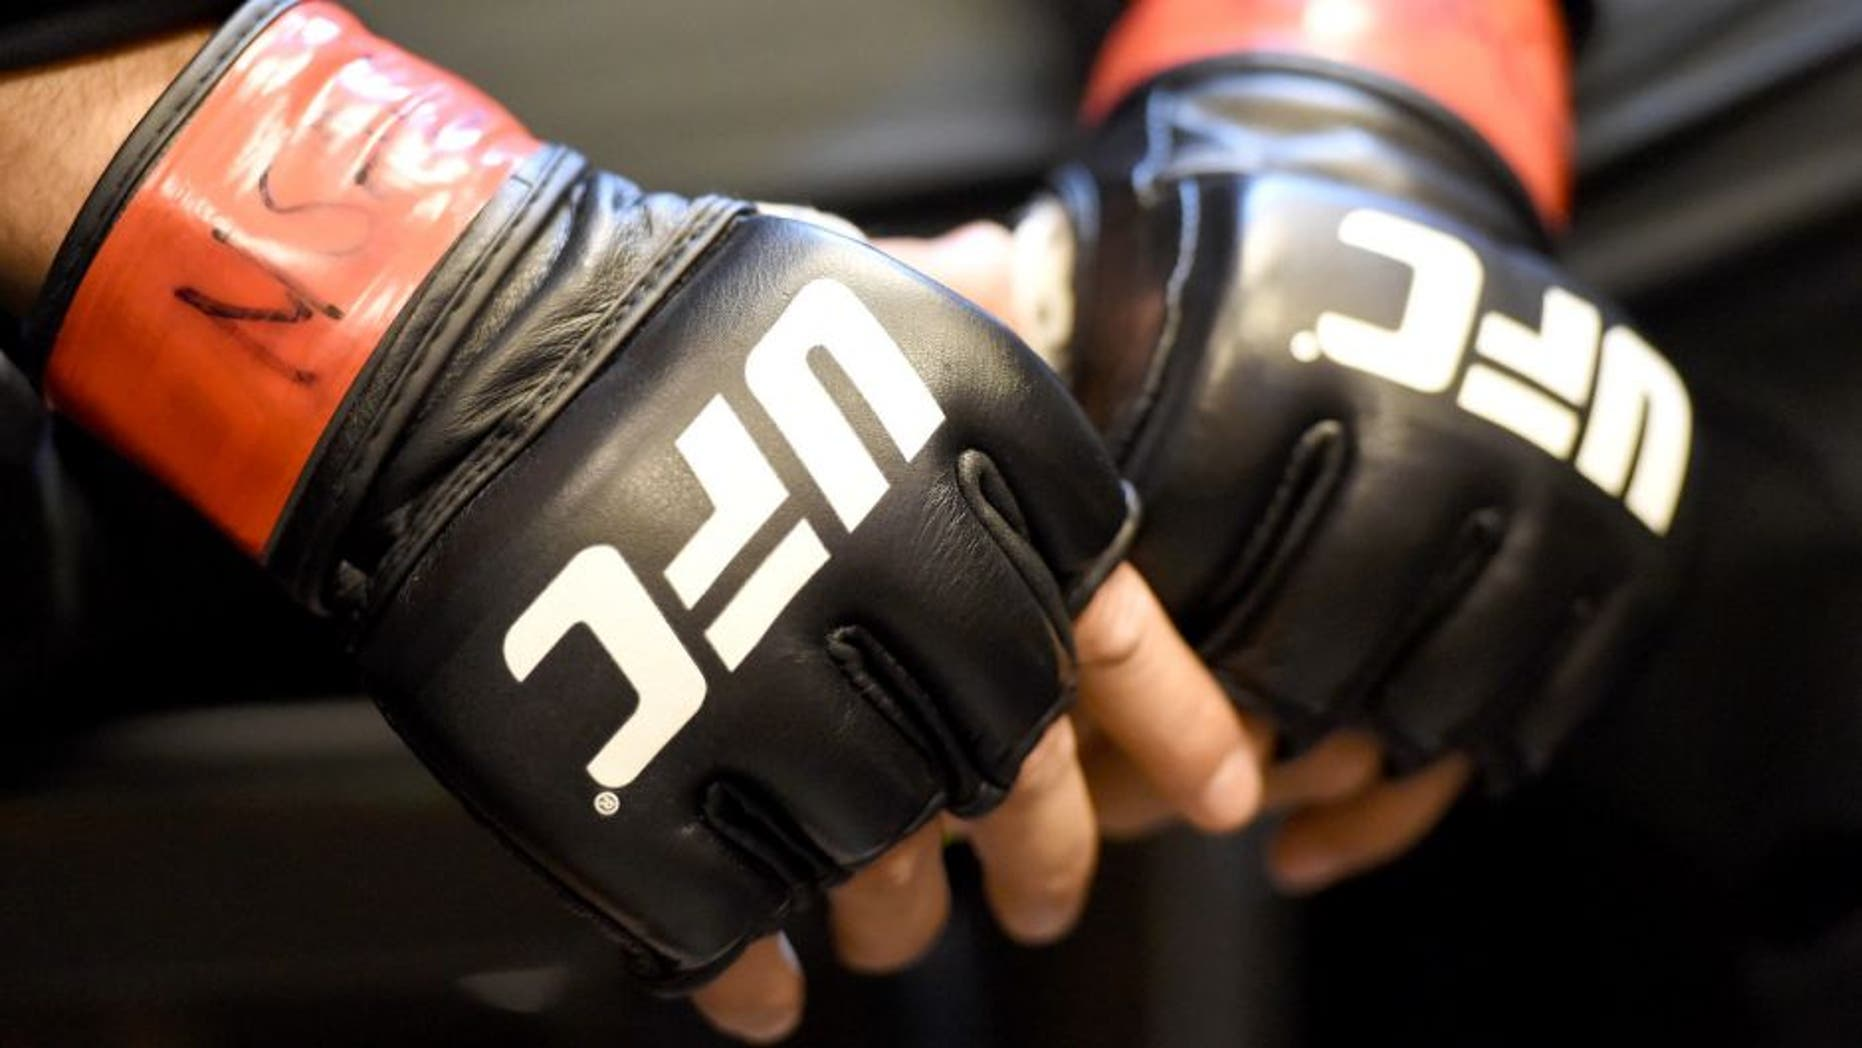 LAS VEGAS, NV - DECEMBER 12: A general view of UFC fight gloves backstage during the UFC 194 event inside MGM Grand Garden Arena on December 12, 2015 in Las Vegas, Nevada. (Photo by Mike Roach/Zuffa LLC/Zuffa LLC via Getty Images)